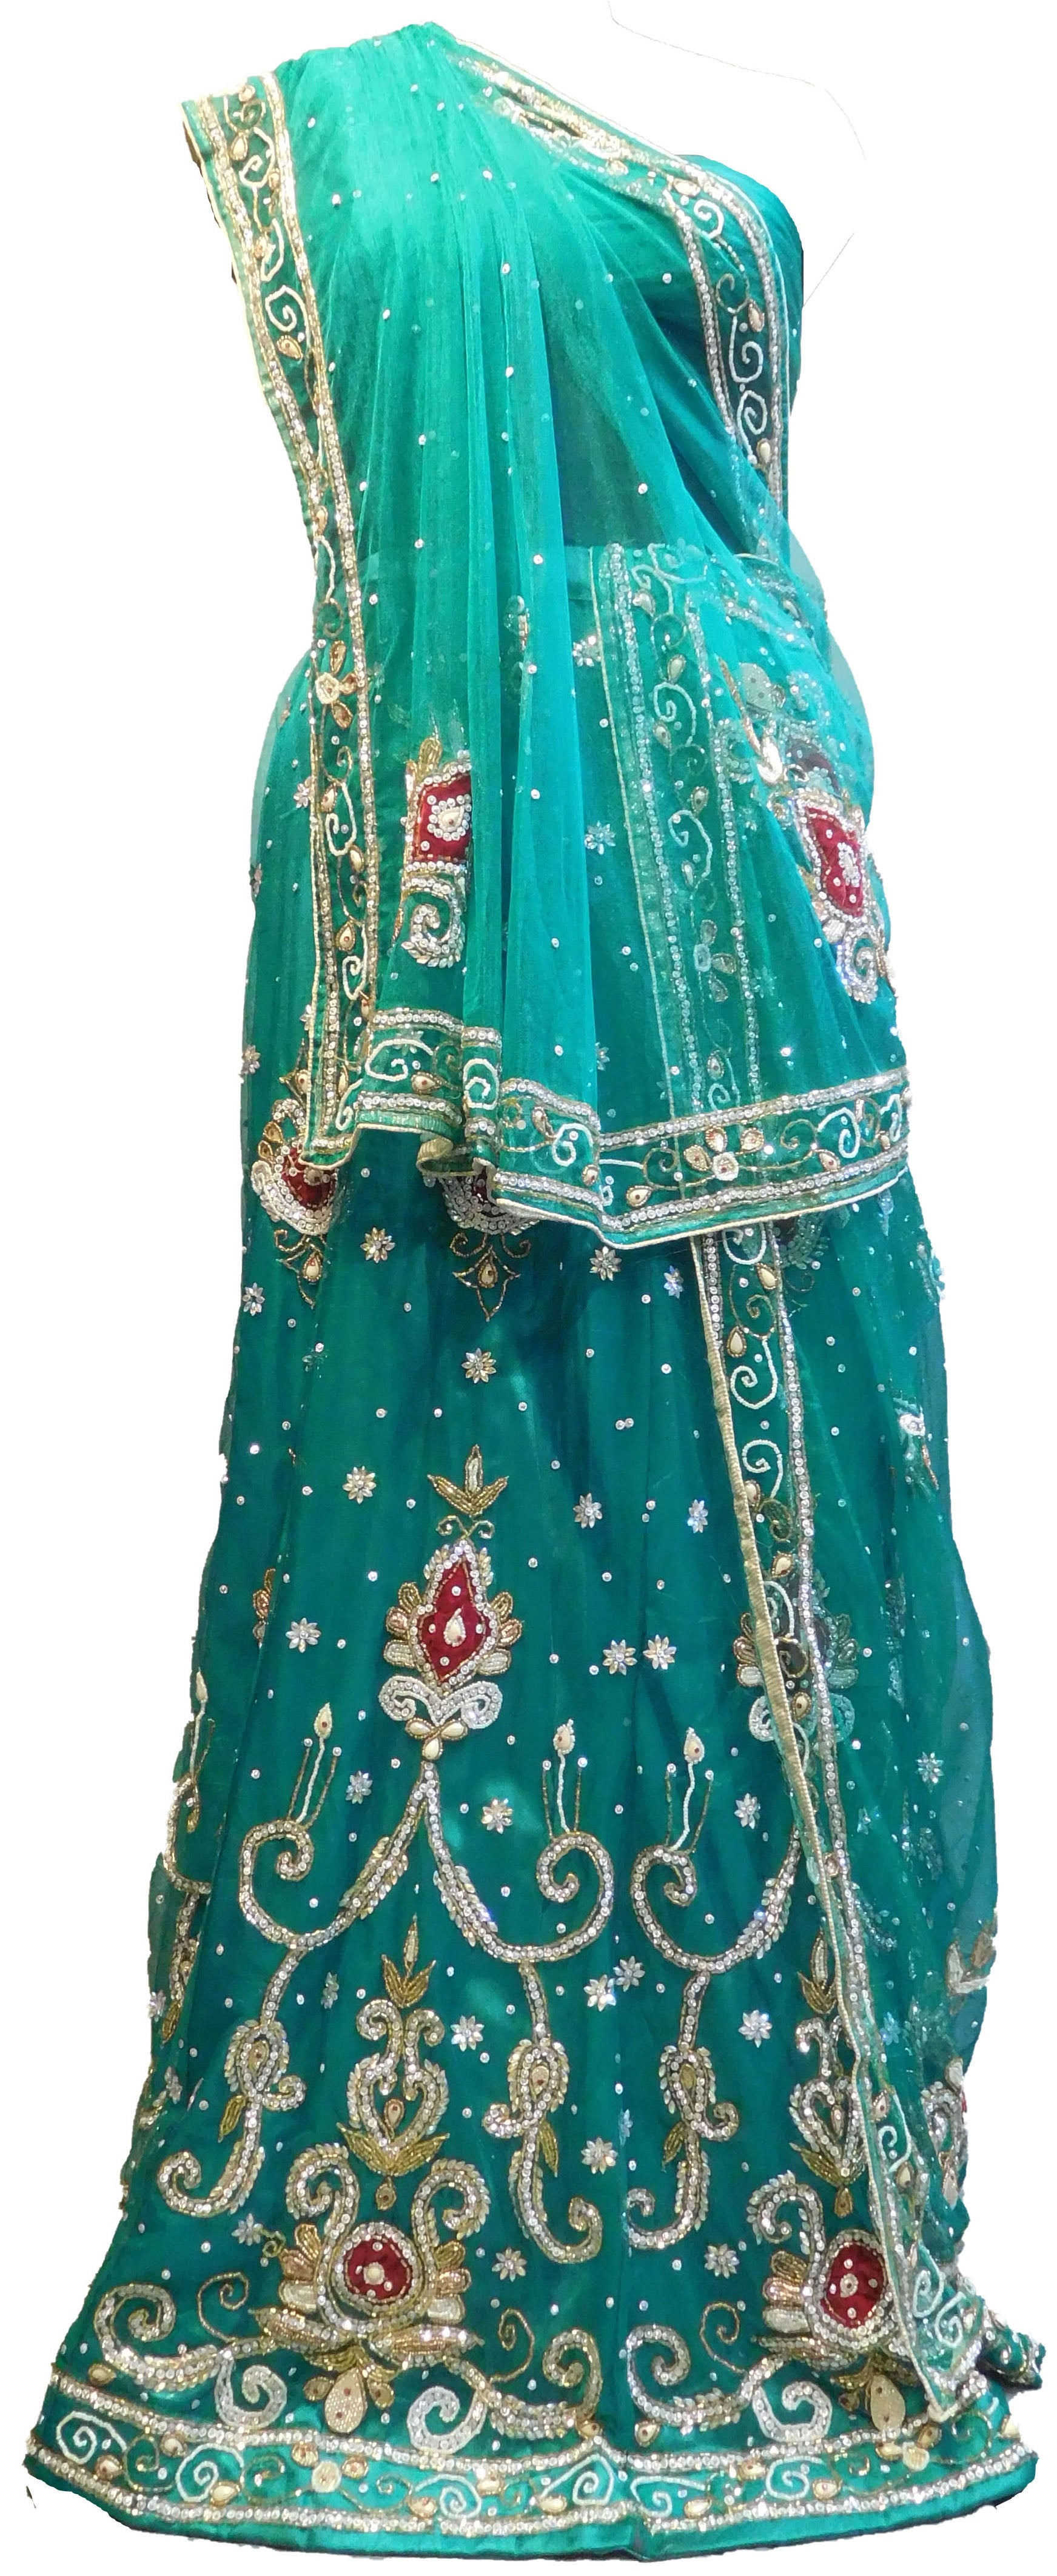 SMSAREE Turquoise Designer Wedding Partywear Net Stone Beads Cutdana & Pearl Hand Embroidery Work Bridal Lahenga Choli Dupatta SemiStitched LAE627